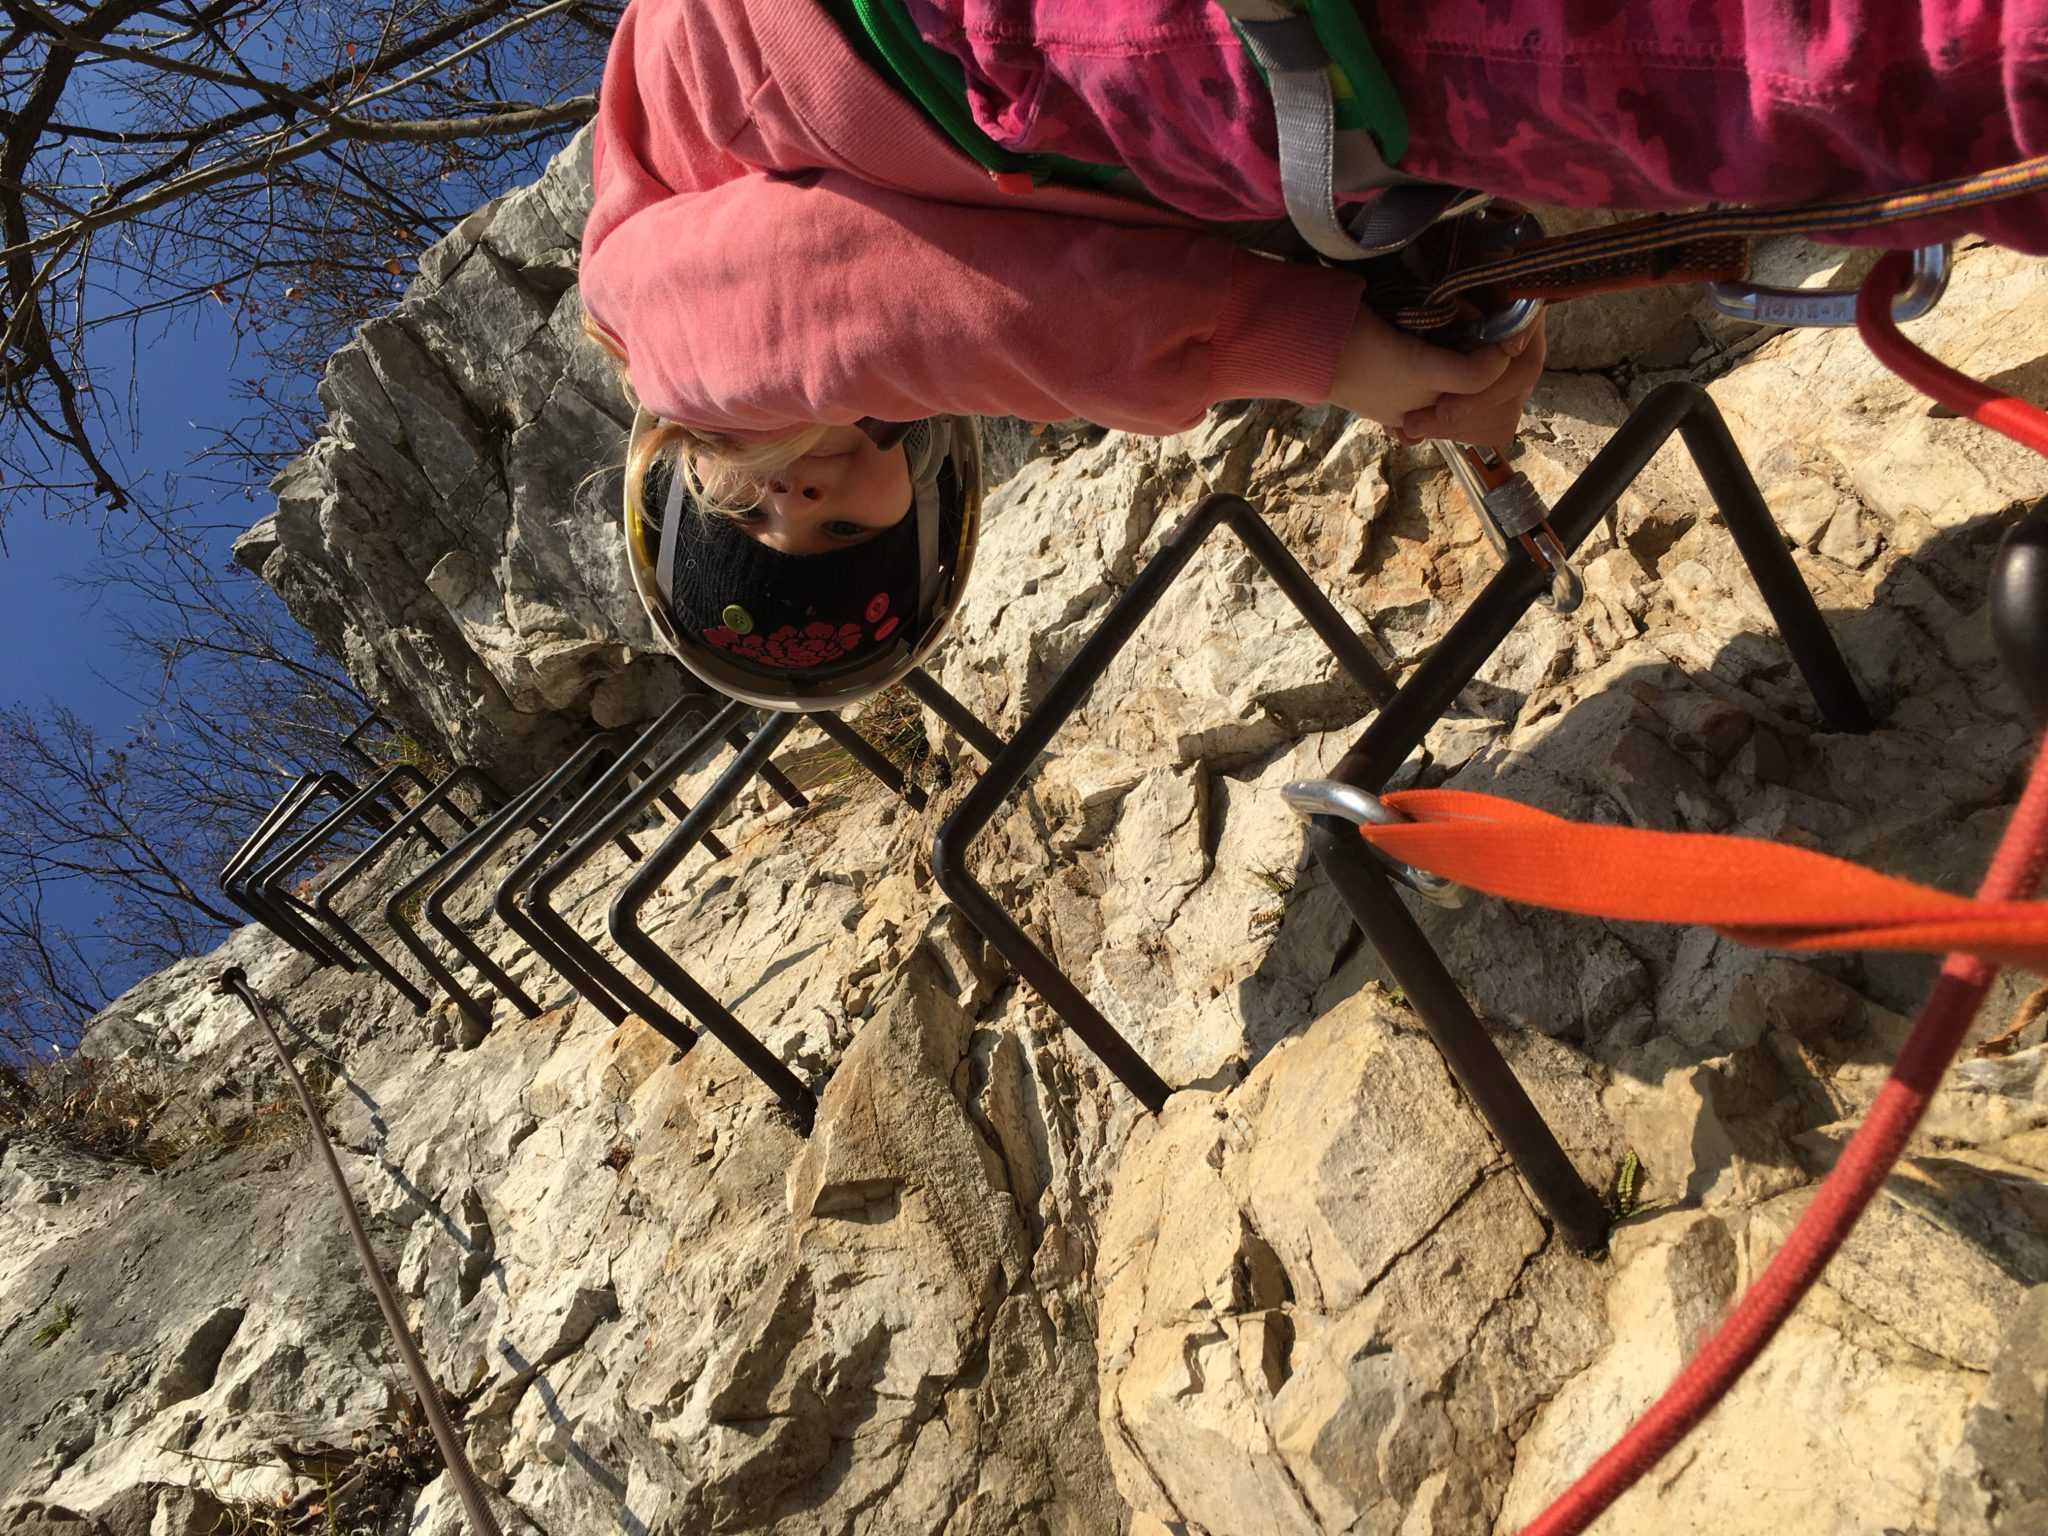 Kids love climbing via ferrata, but make sure you use recommended safety gear like a helmet, a lanyard protection system, and a harness. Photo by: Exploring Slovenia.